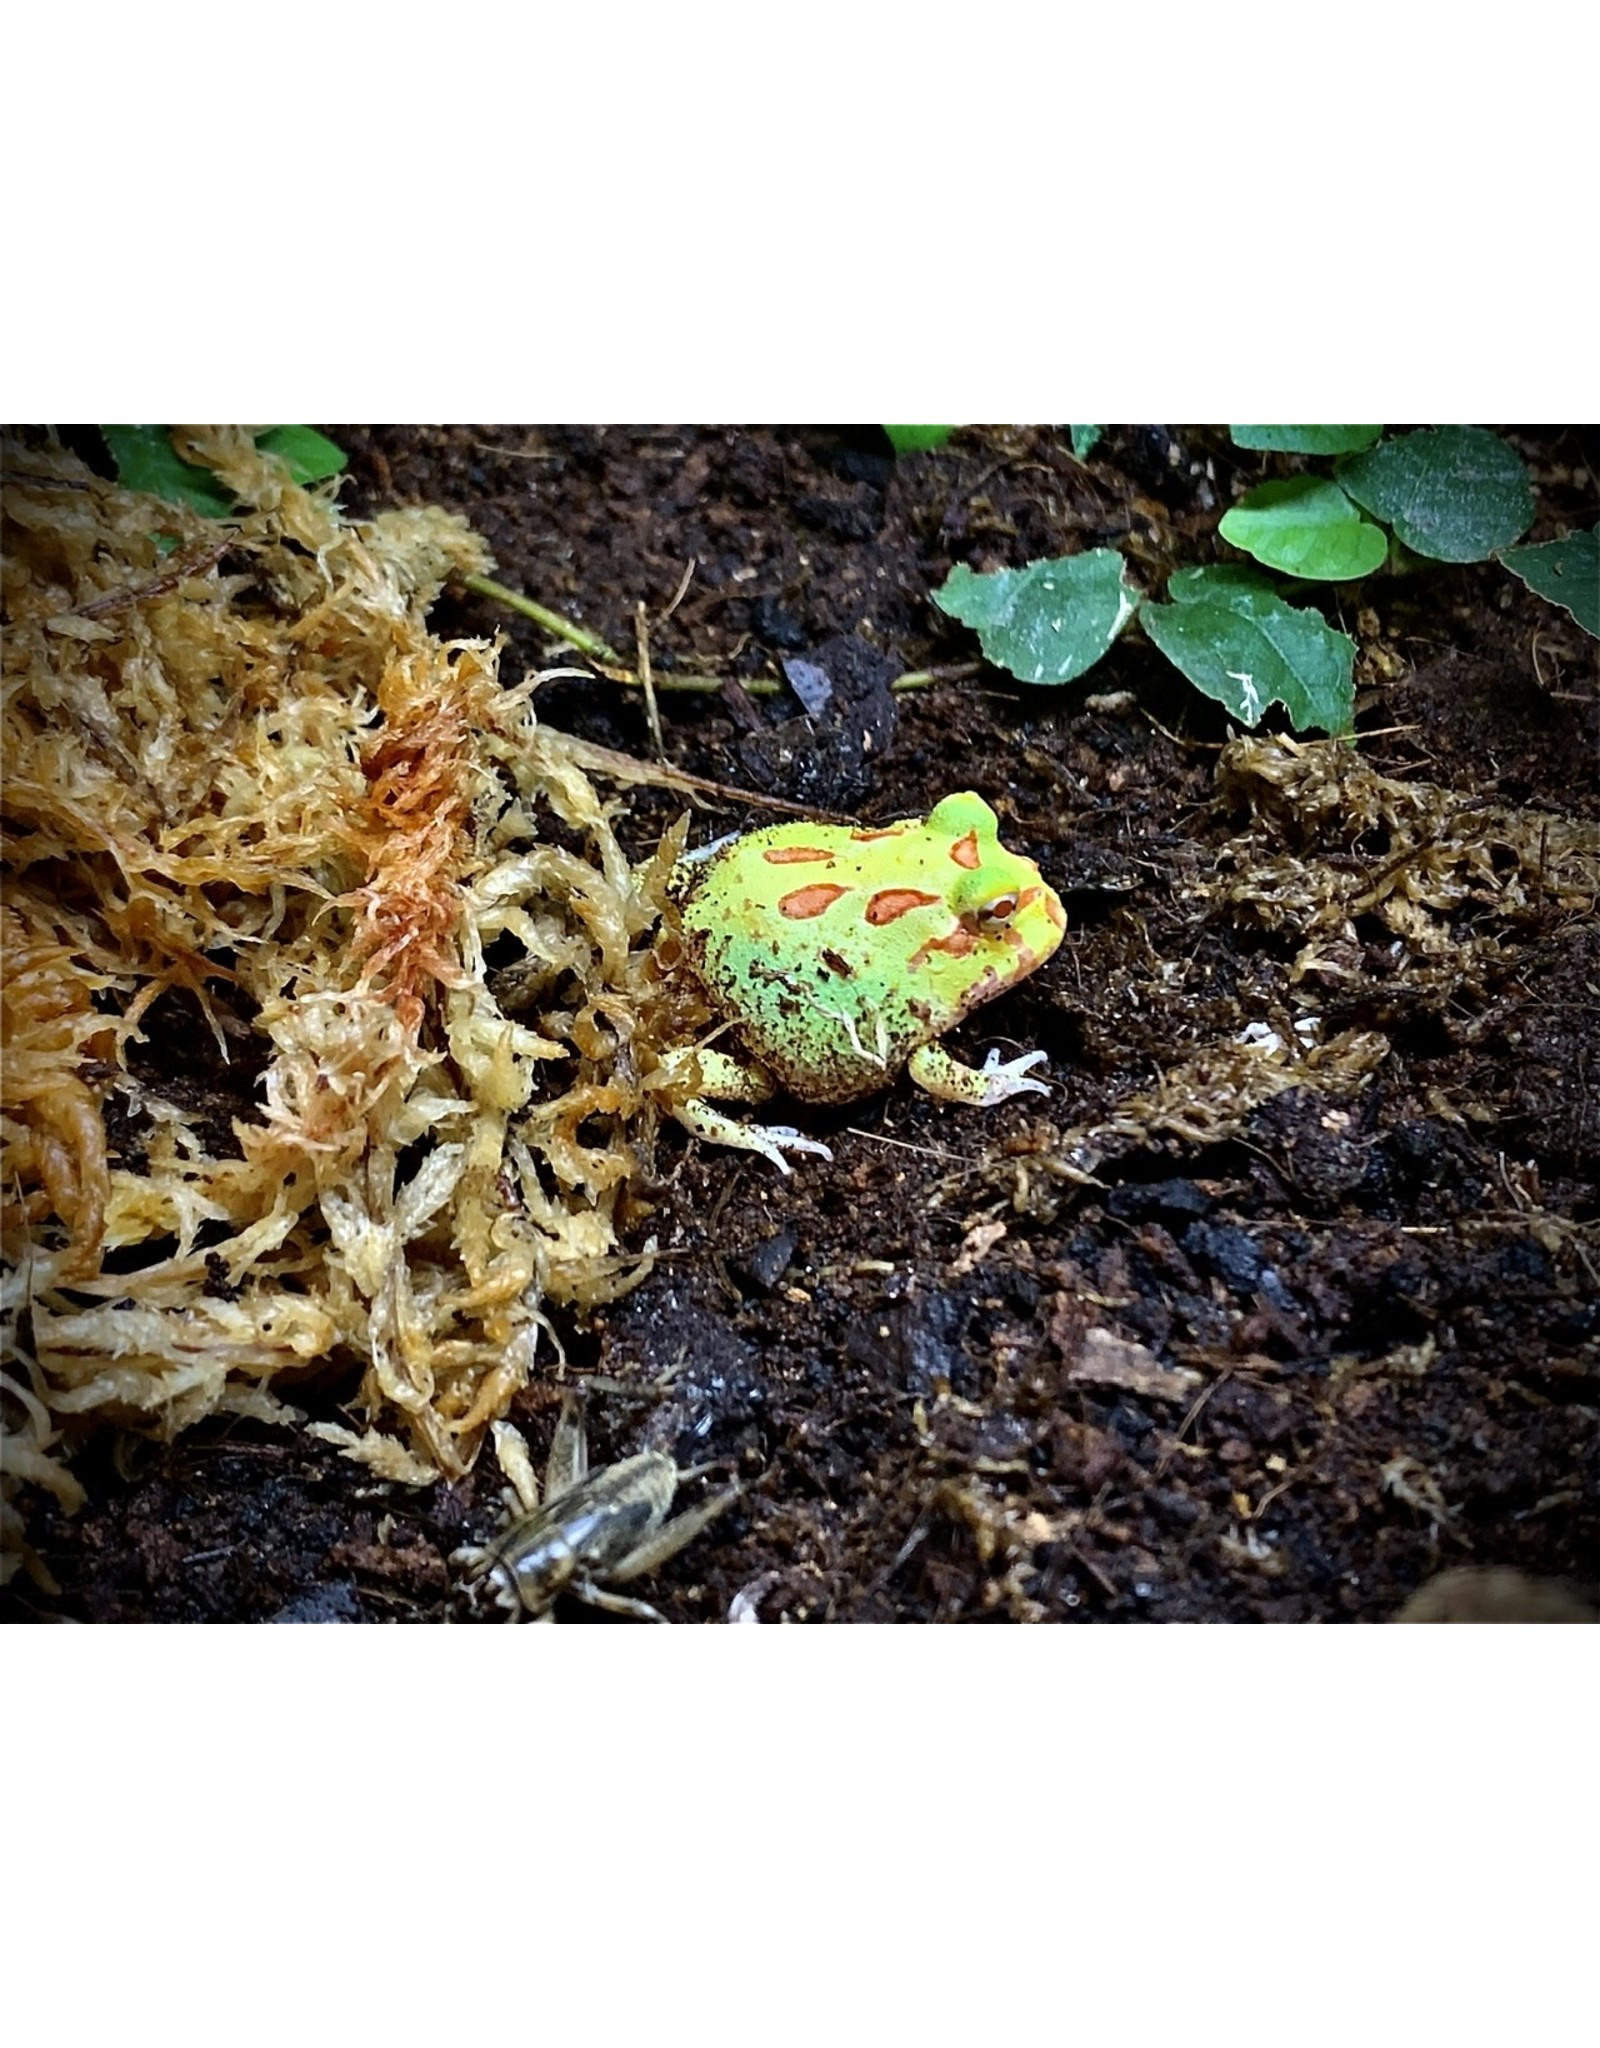 Angell Pets Albino Horned Frog (Ceratophrys cranwelli)